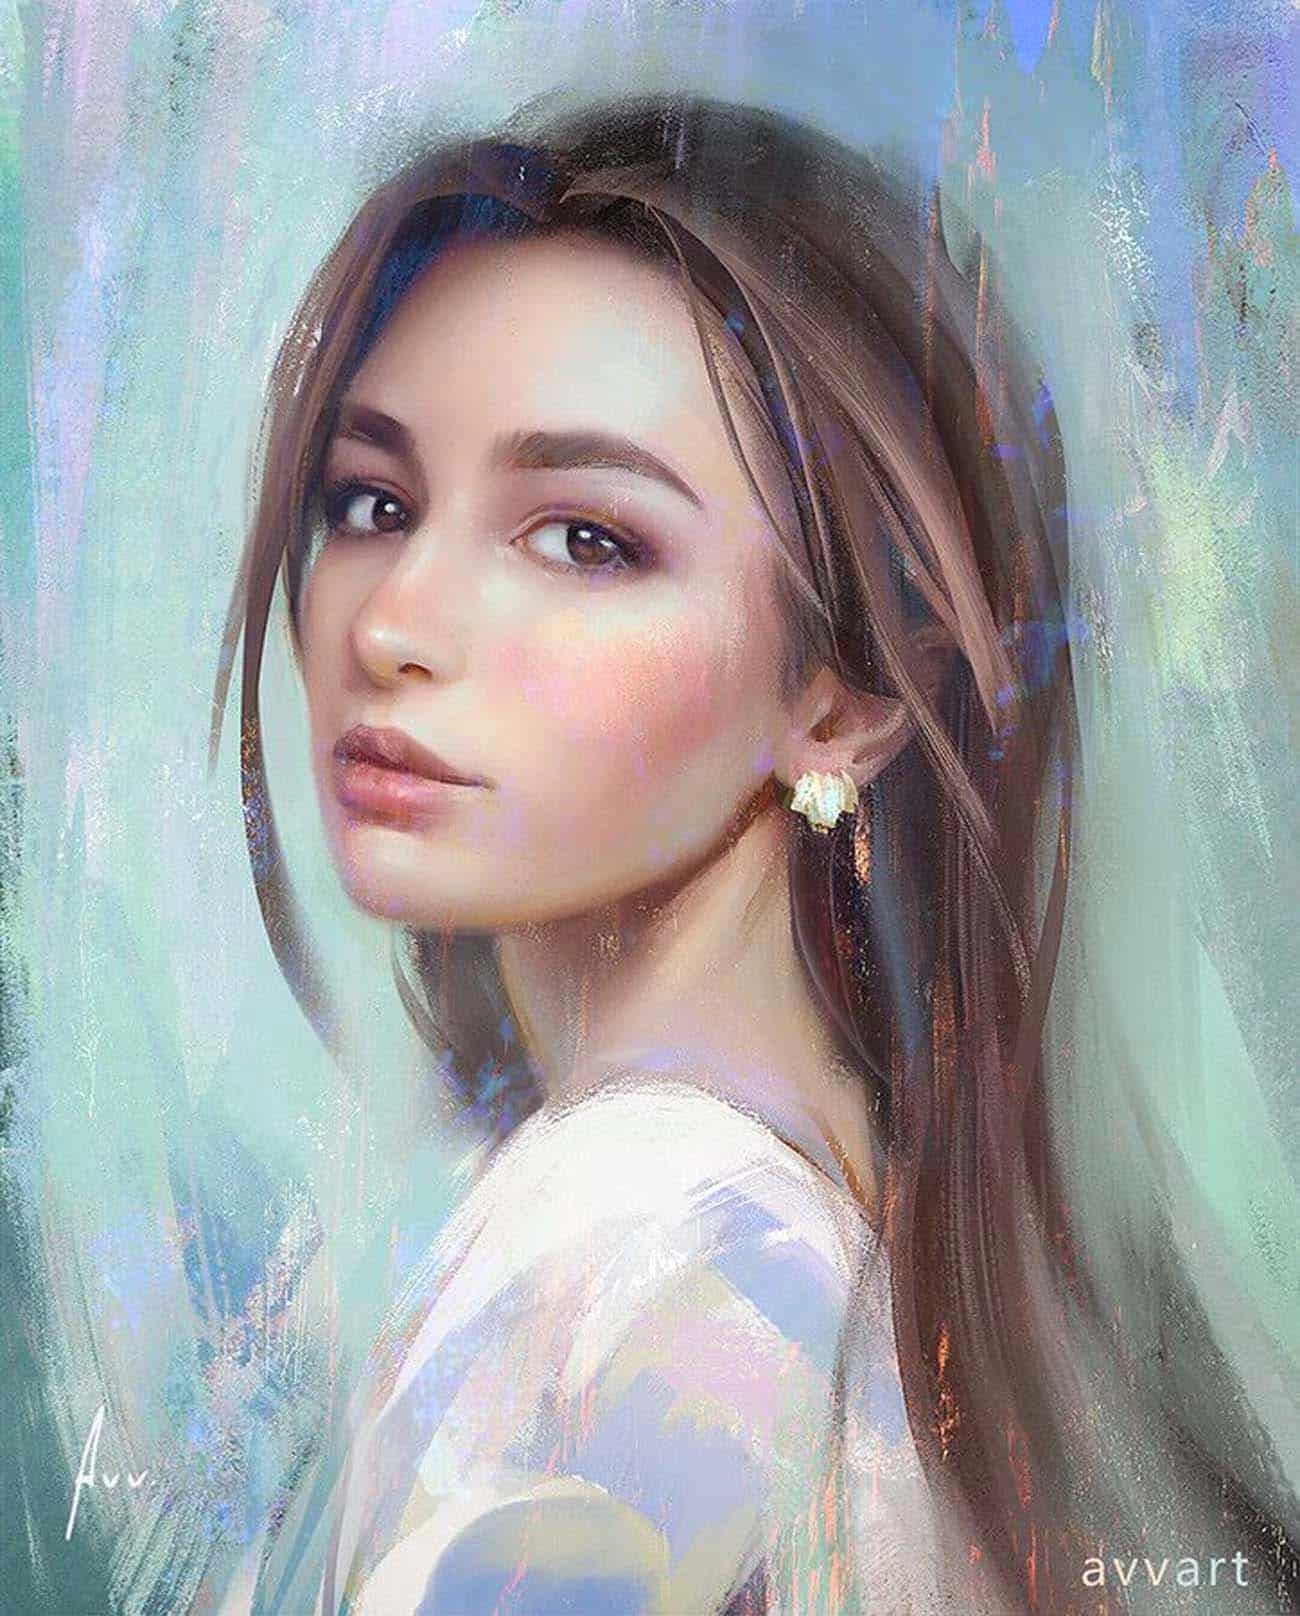 Beautiful Woman Painting Images Beautiful Digital Painting Inspiration 029 Paintable